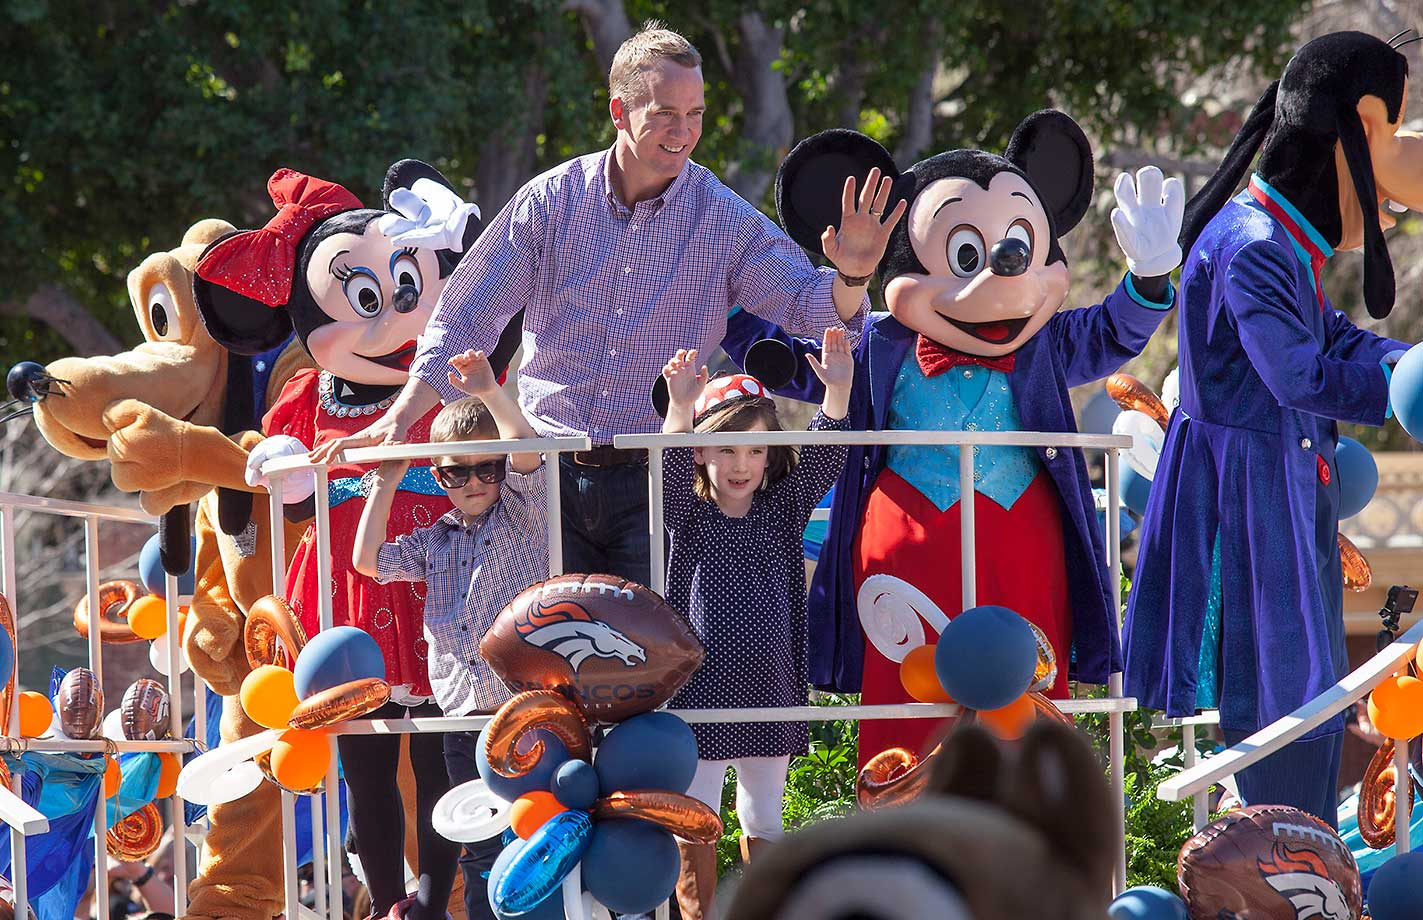 Peyton Manning with his children at Disneyland Park in Anaheim after winning Super Bowl 50 over the Carolina Panthers.